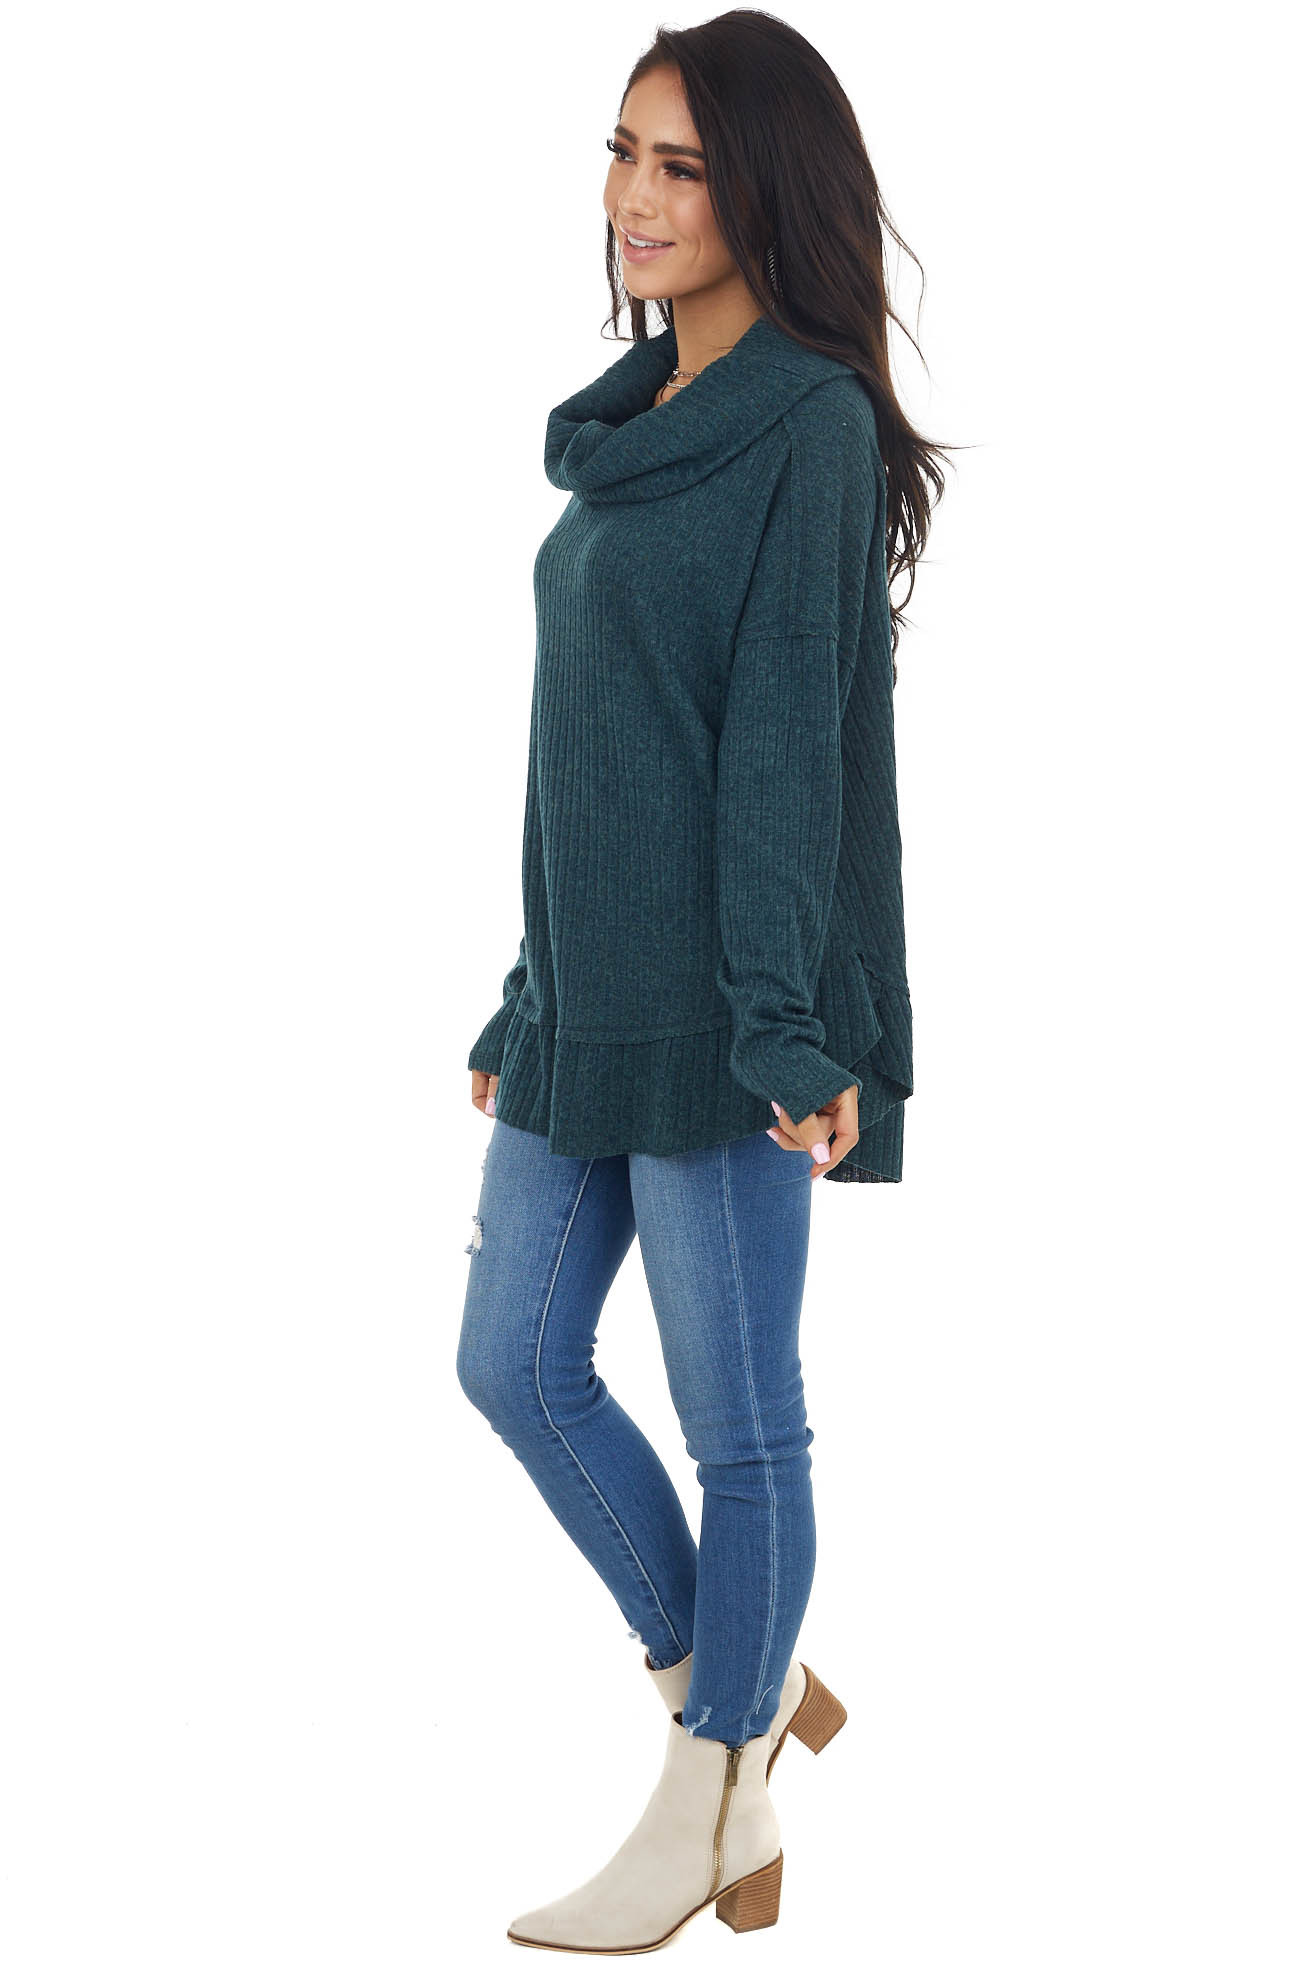 Pine Green Ribbed Cowl Neck Sweater with Raw Seam Details